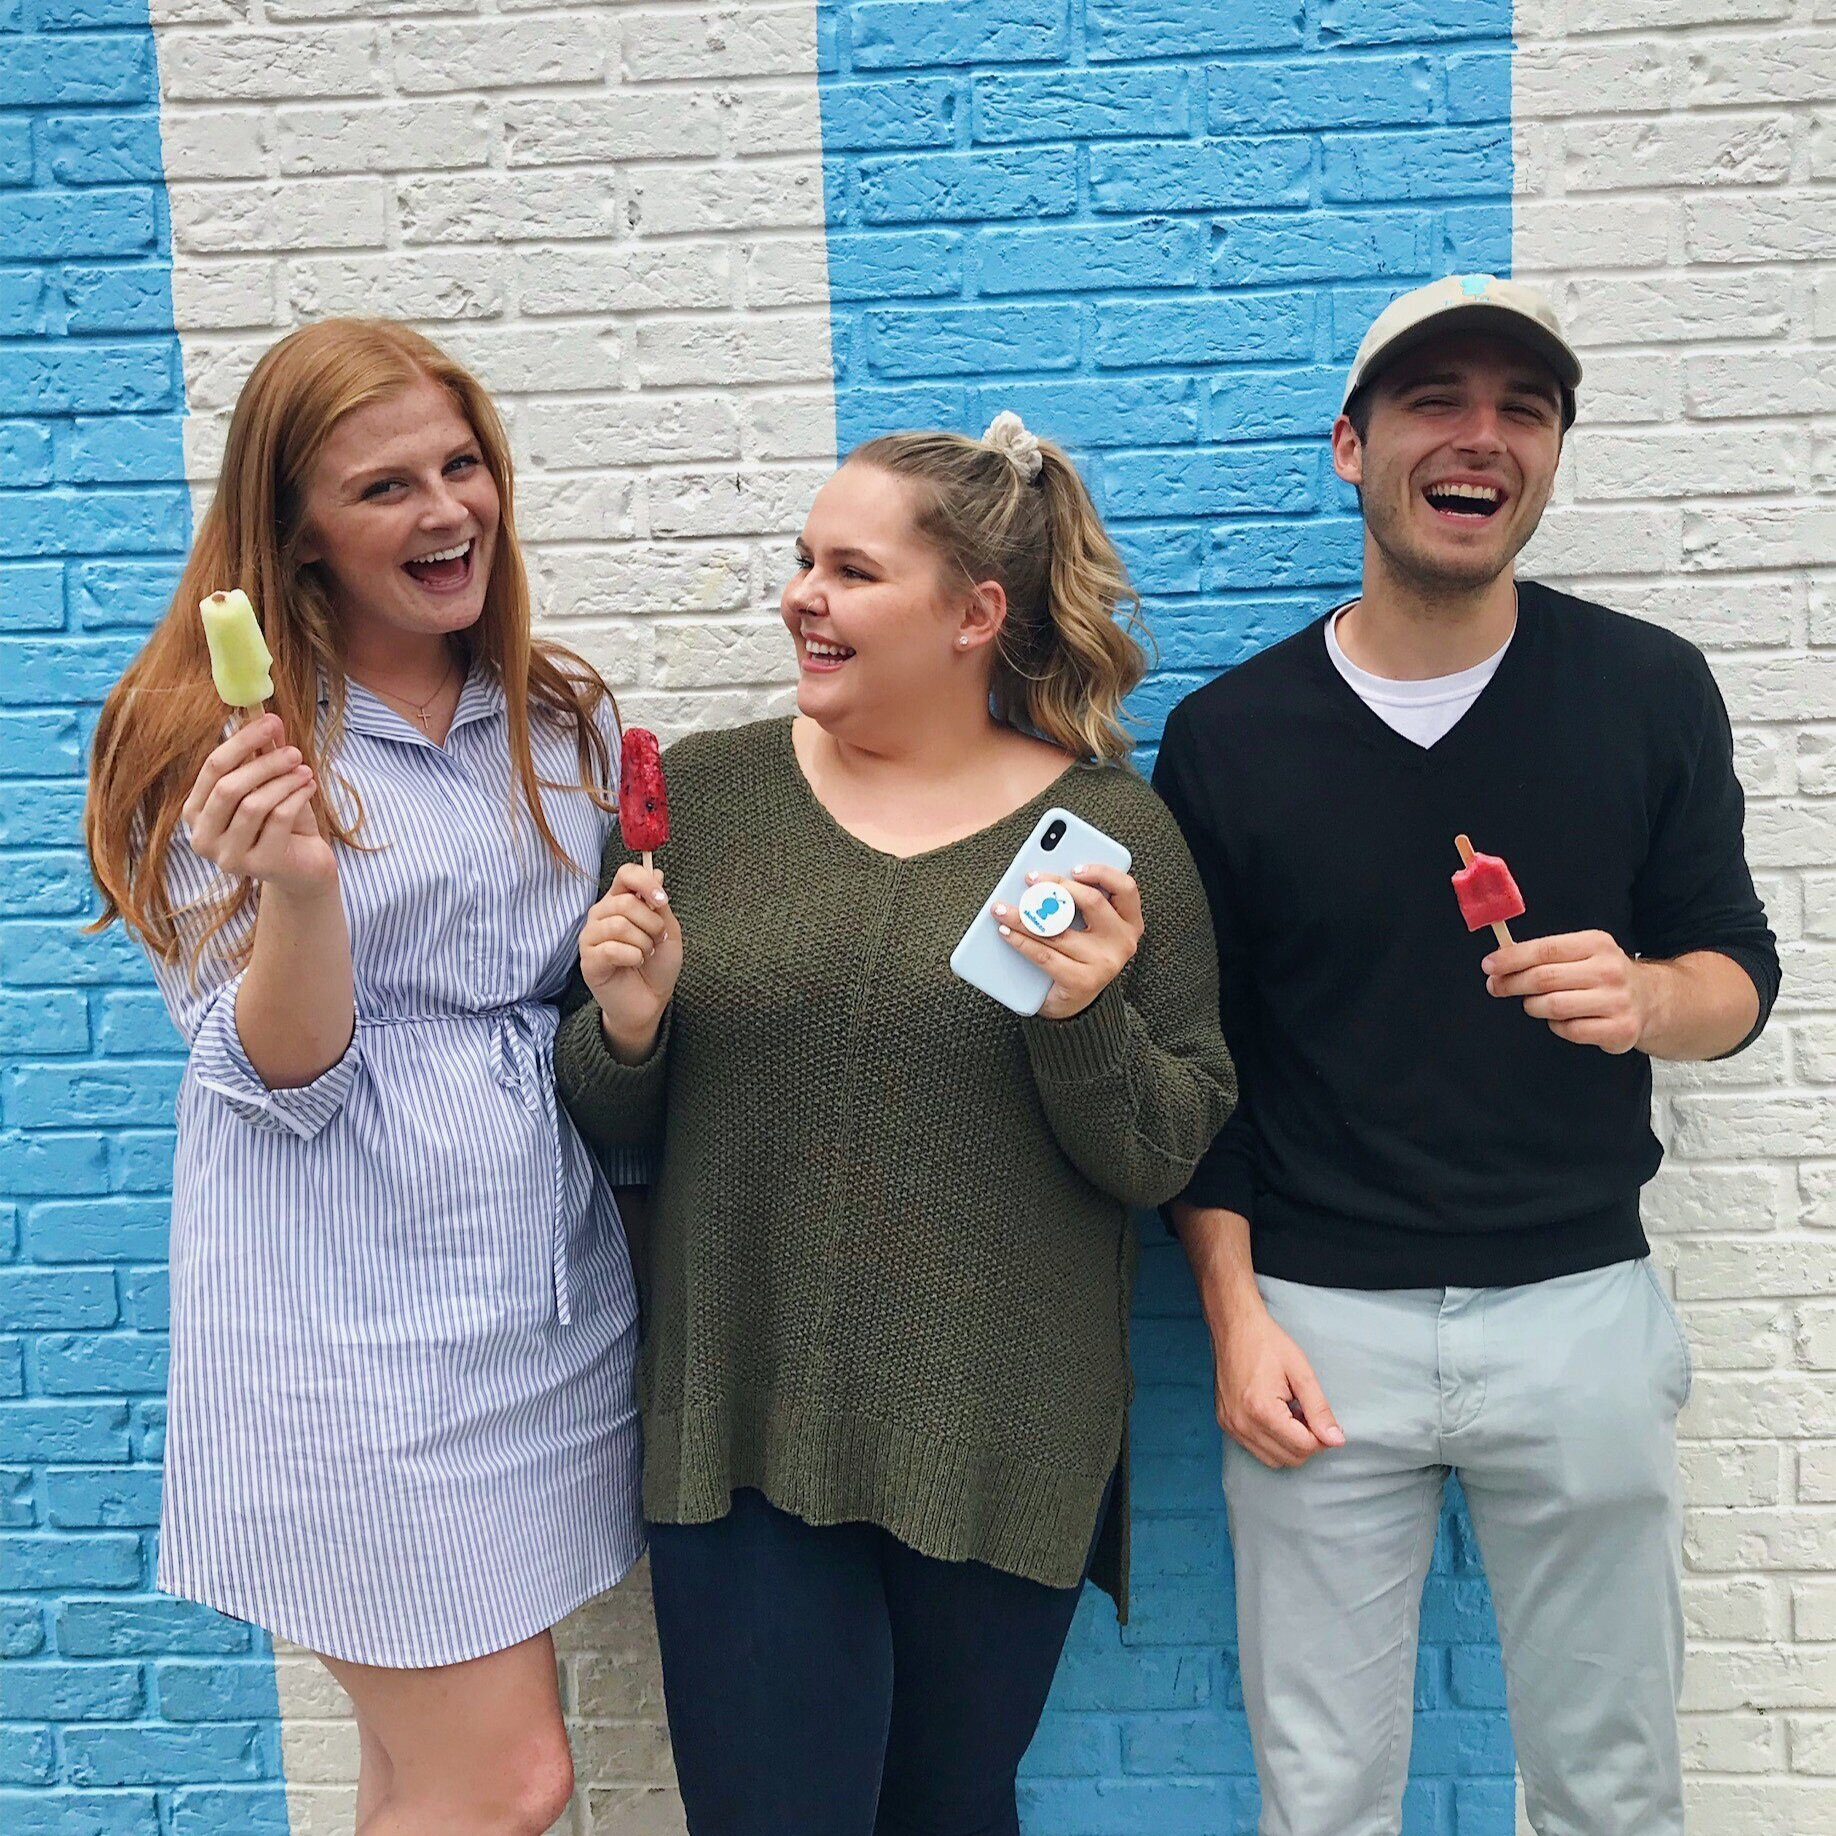 Our Summer 2019 interns having a blast during a Skoller content day!